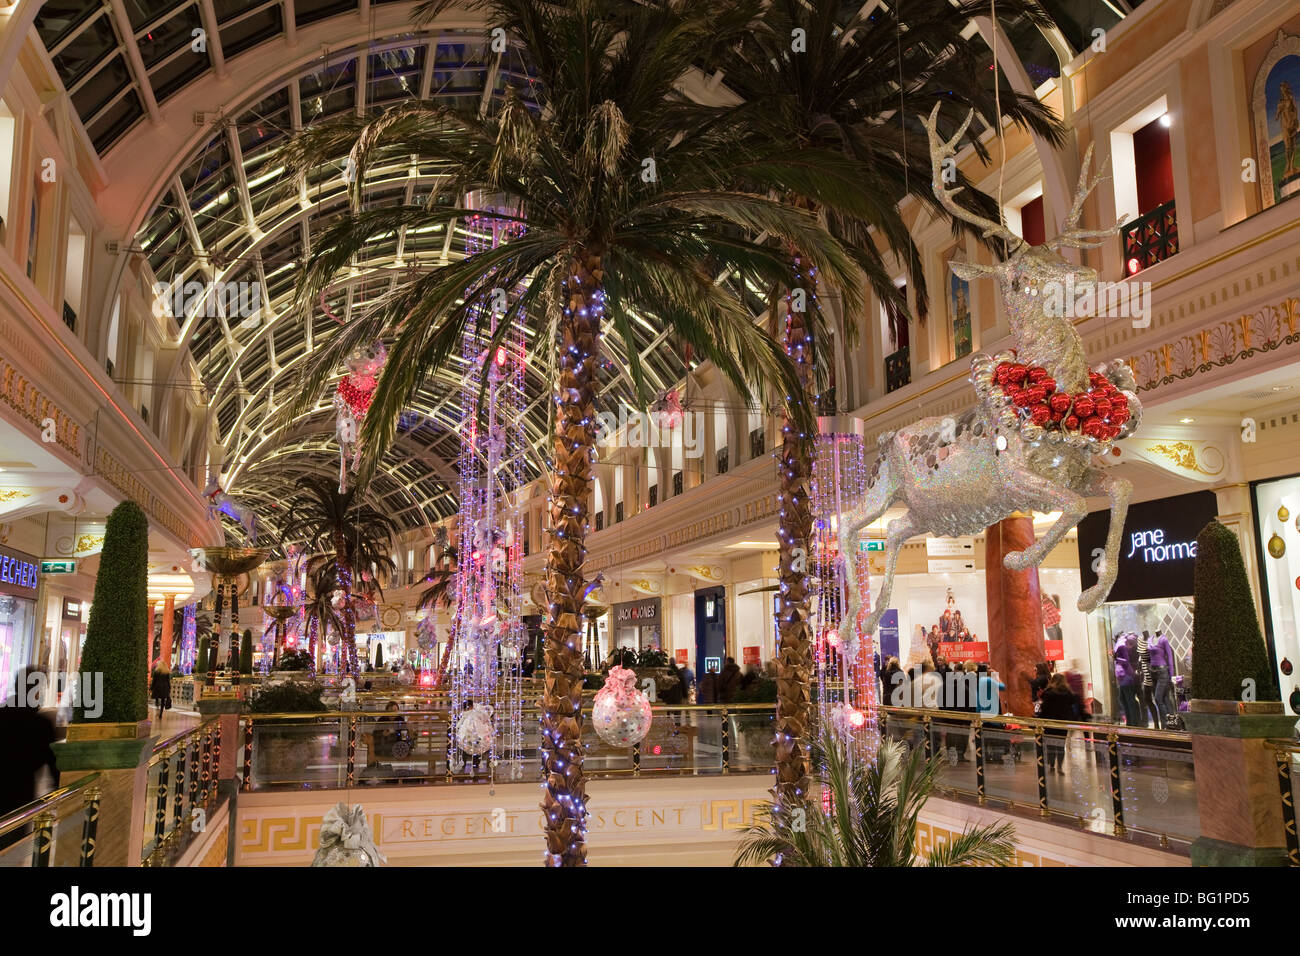 UK, England, Manchester, Trafford Centre, shopping mall decorated for Christmas flying reindeer decorations - Stock Image